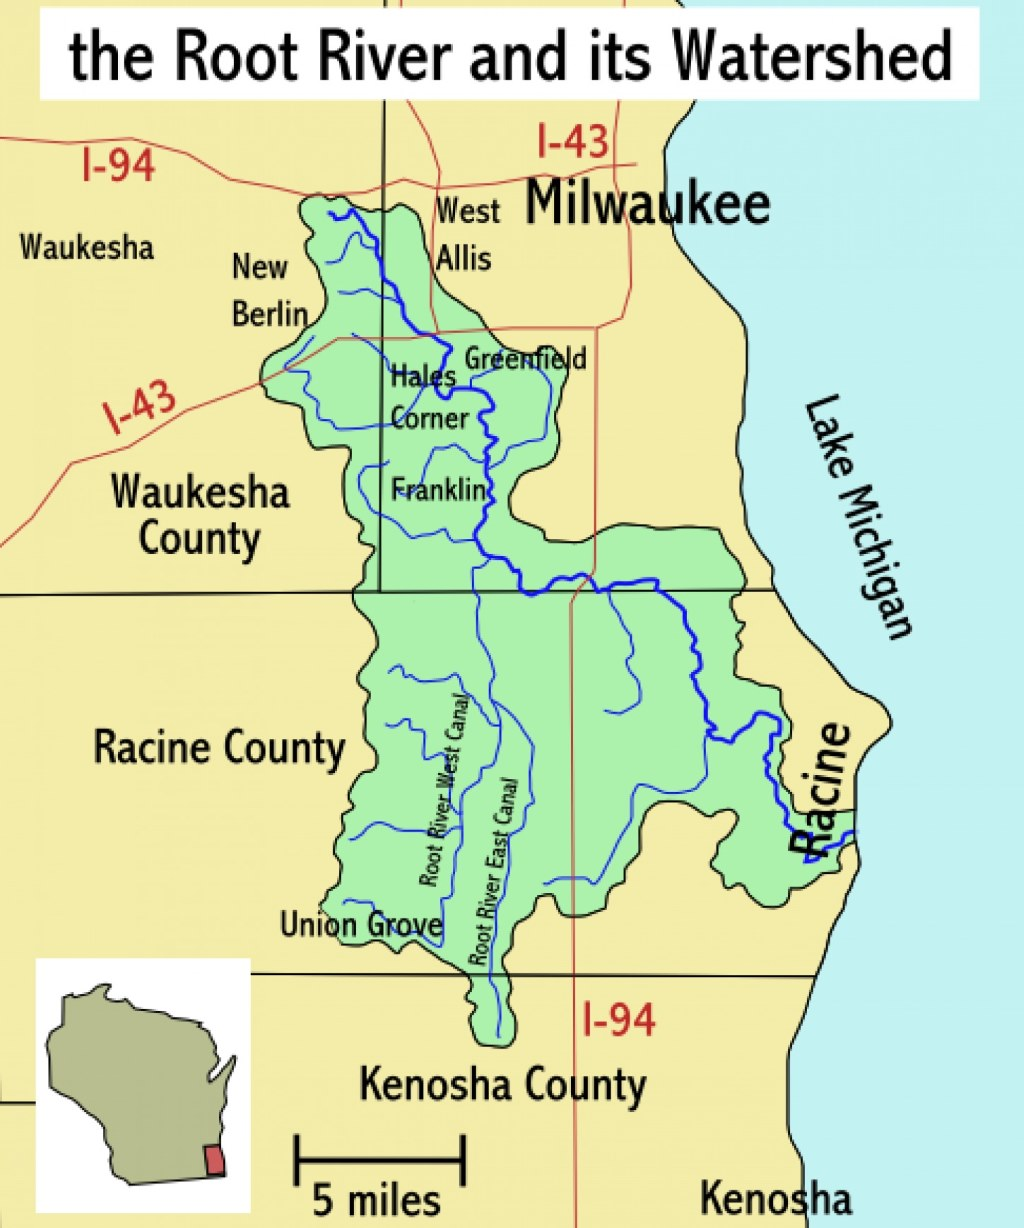 Waukesha will discharge wastewater to Lake Michigan via the Root River, which it has argued will be an environmental benefit to the river. Photo from Wikimedia Commons (CC BY-SA 2.5)